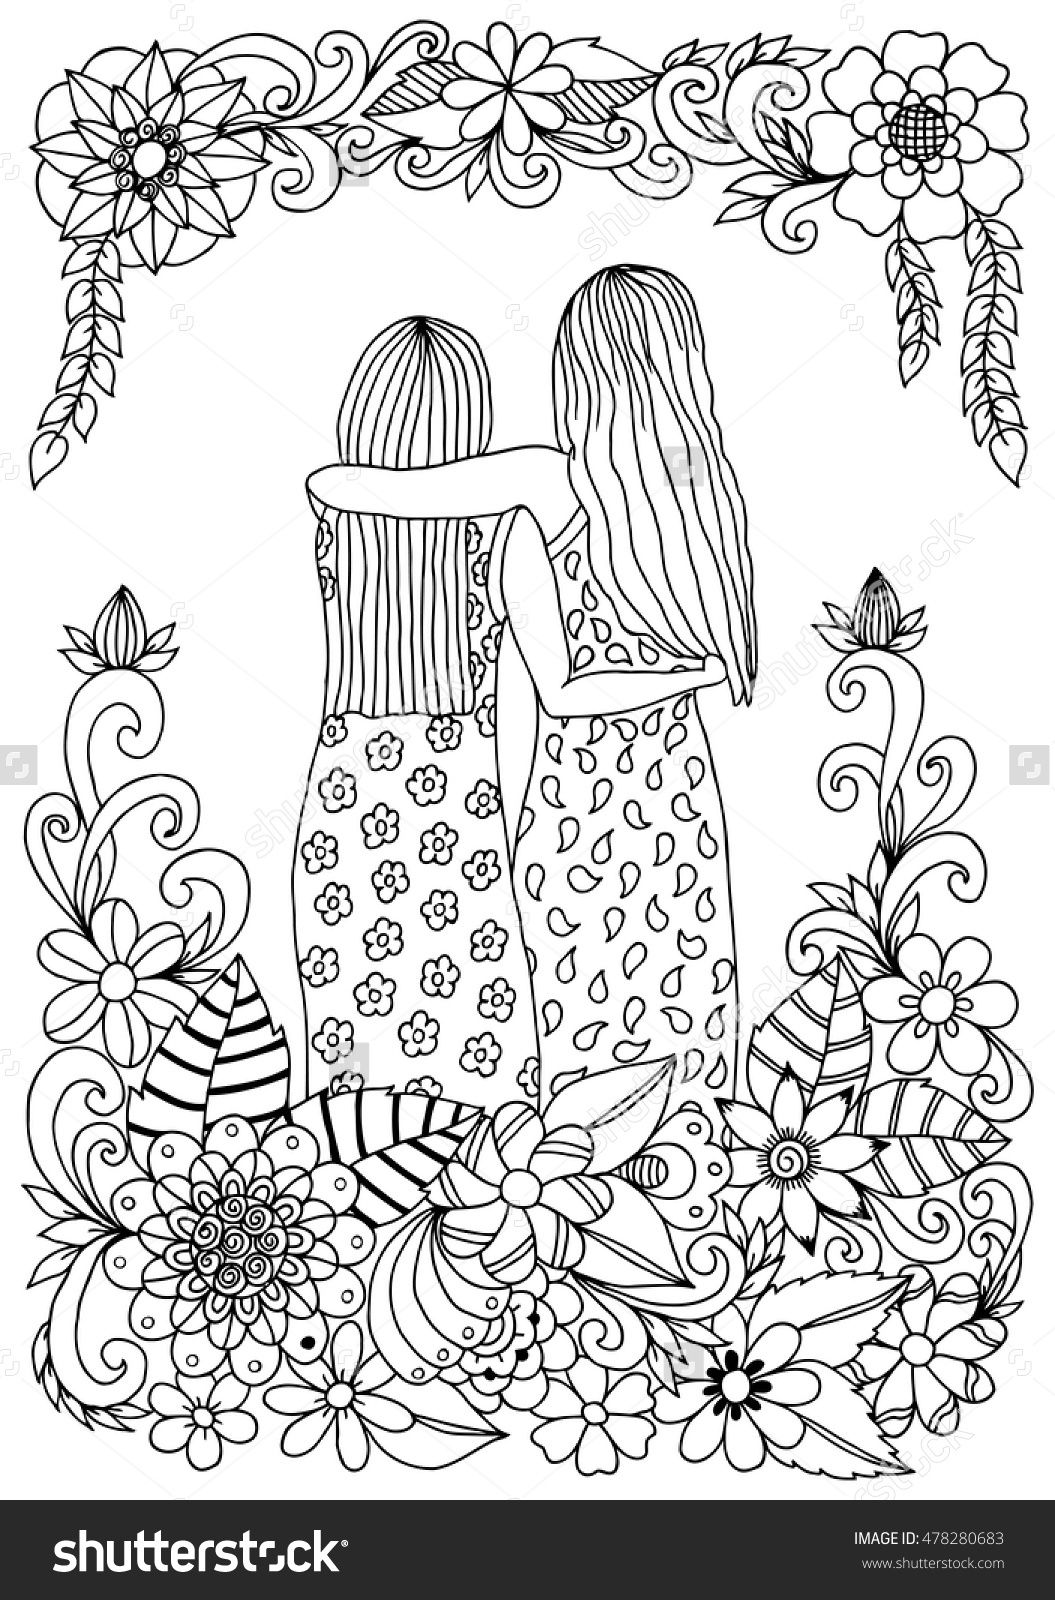 zentangle two sisters amongst flowers hugging coloring